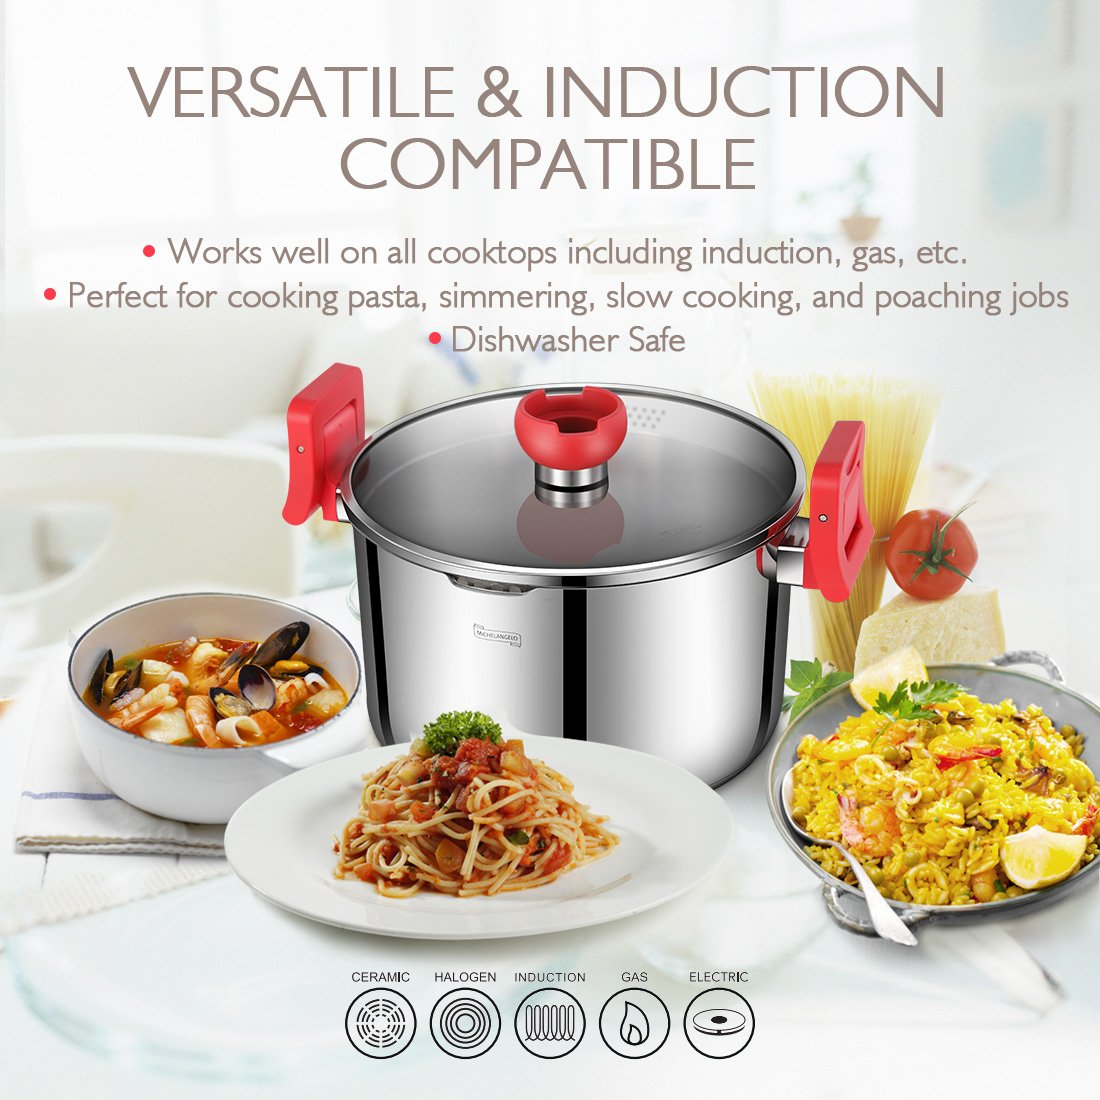 MICHELANGELO 5 Quart Pasta Pot Induction Ready, Stainless Steel Pasta Pot With Strainer Lid, Stainless Steel Dutch Oven Pot, 5 Quart Soup Pots with Lids by MICHELANGELO (Image #5)